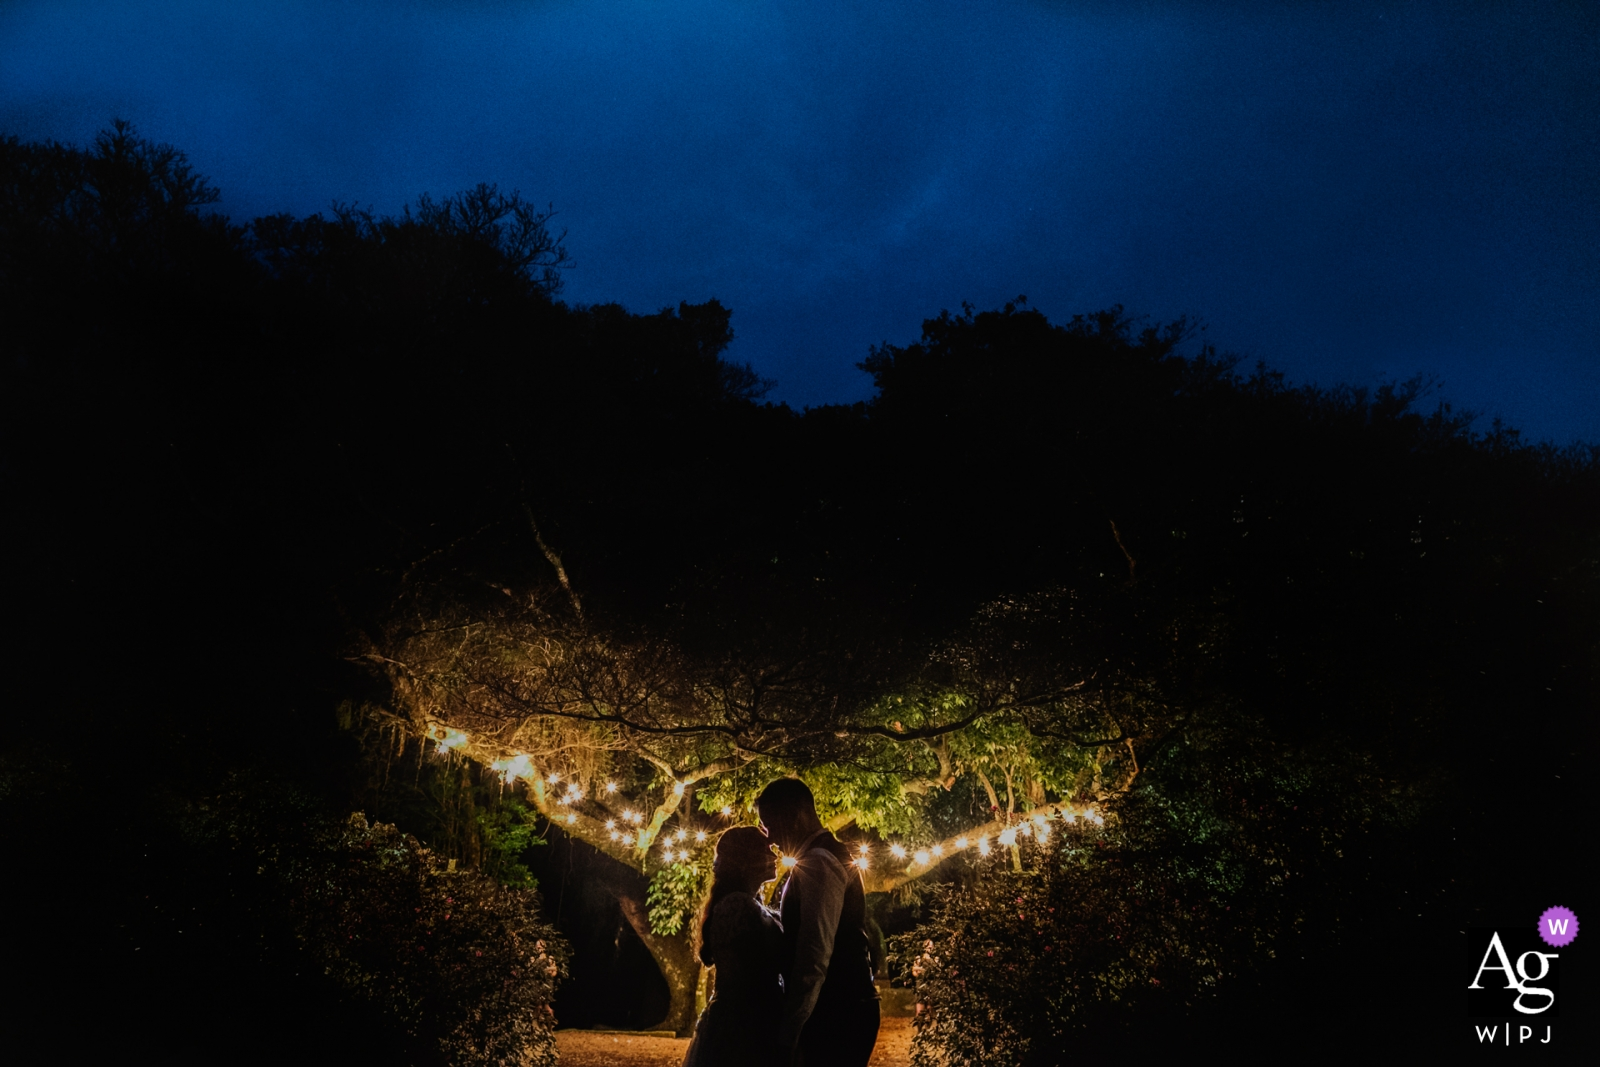 Casa da Figueira - Porto Alegre - Rio Grande do Sul - Brasil wedding portrait photographer | bride and groom with a tree in the background